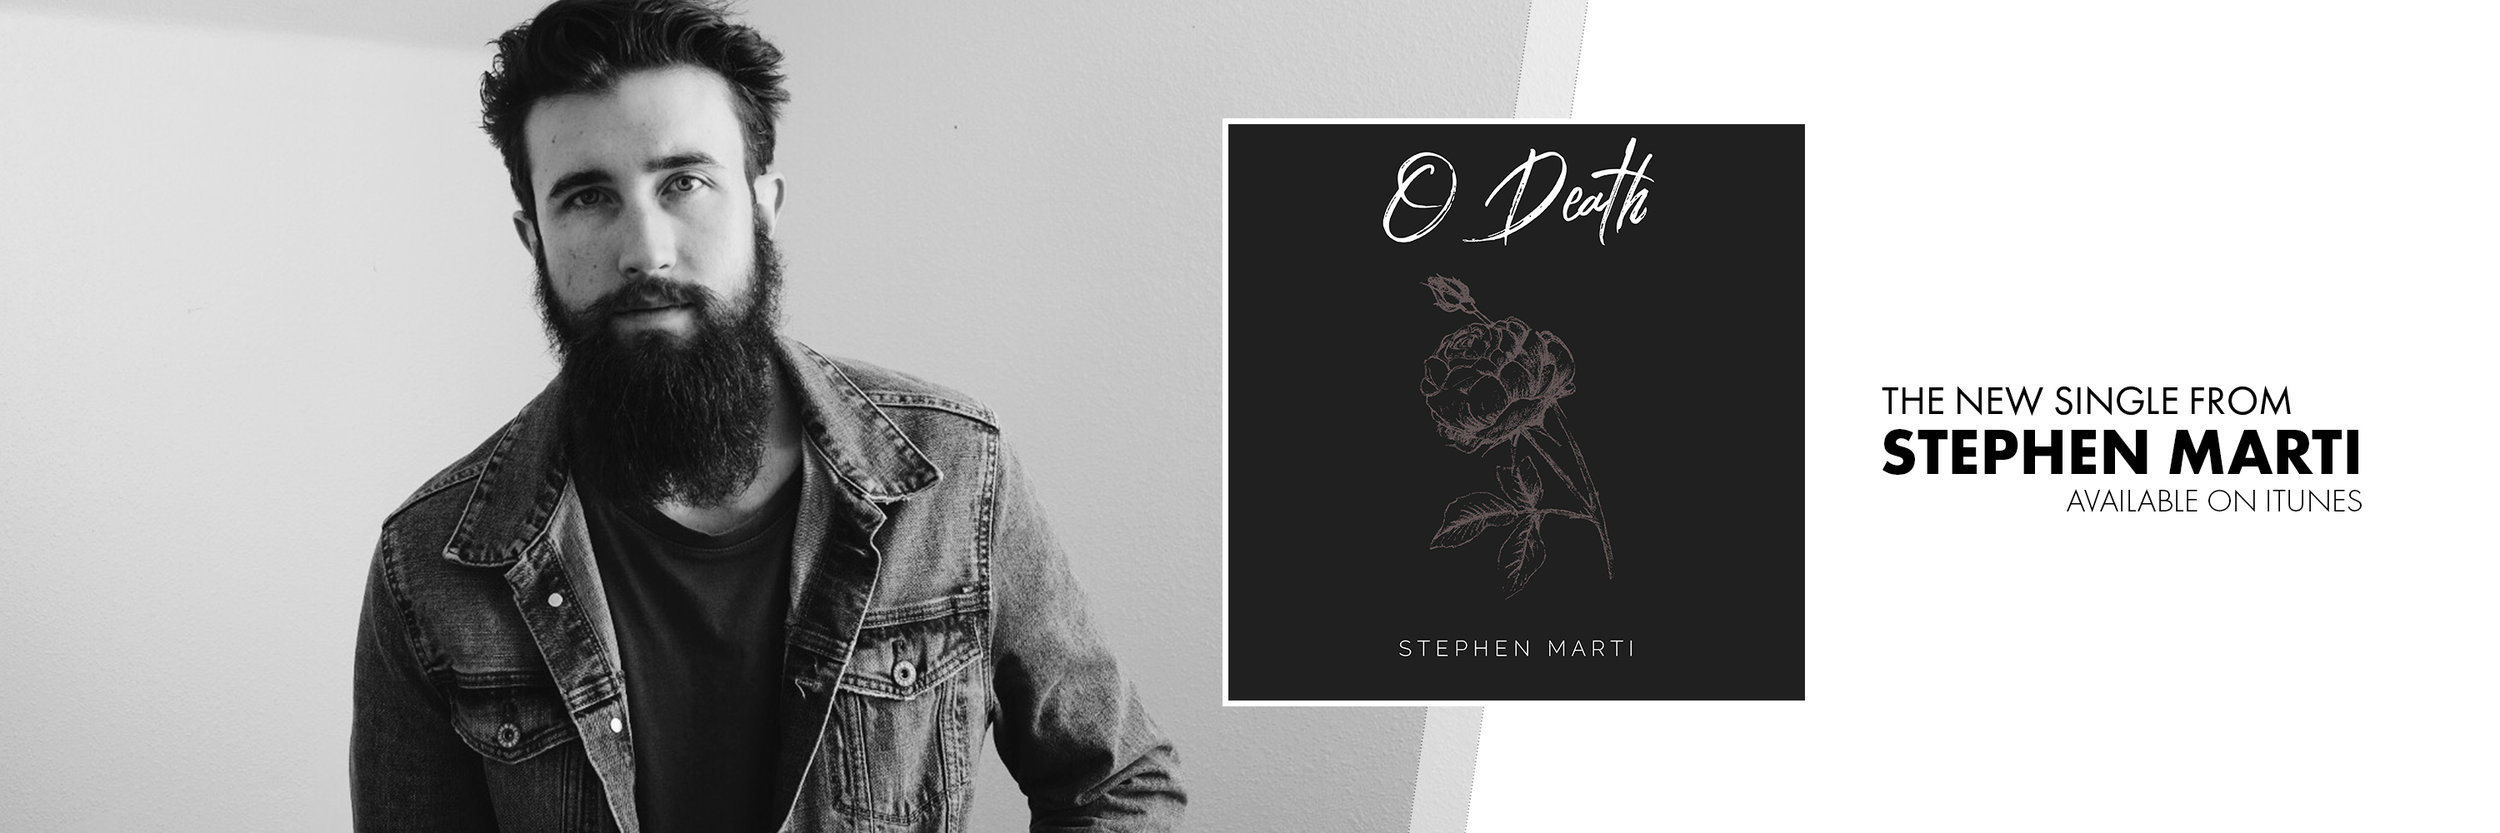 Stephen Marti Website Banner.jpg